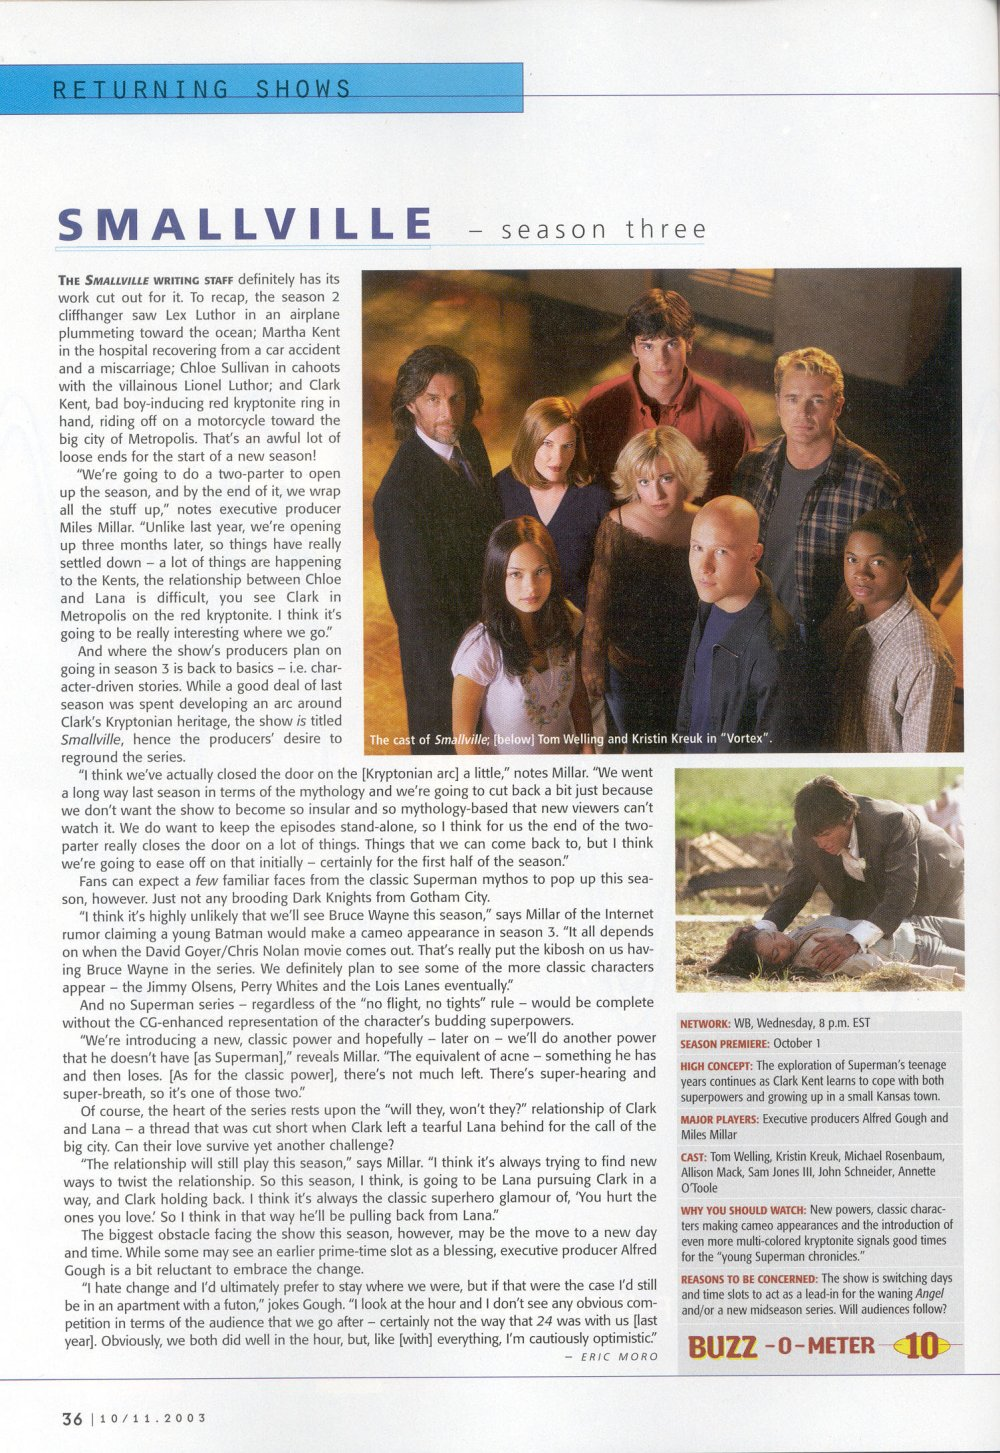 Index of /images/primetime/smallville/news